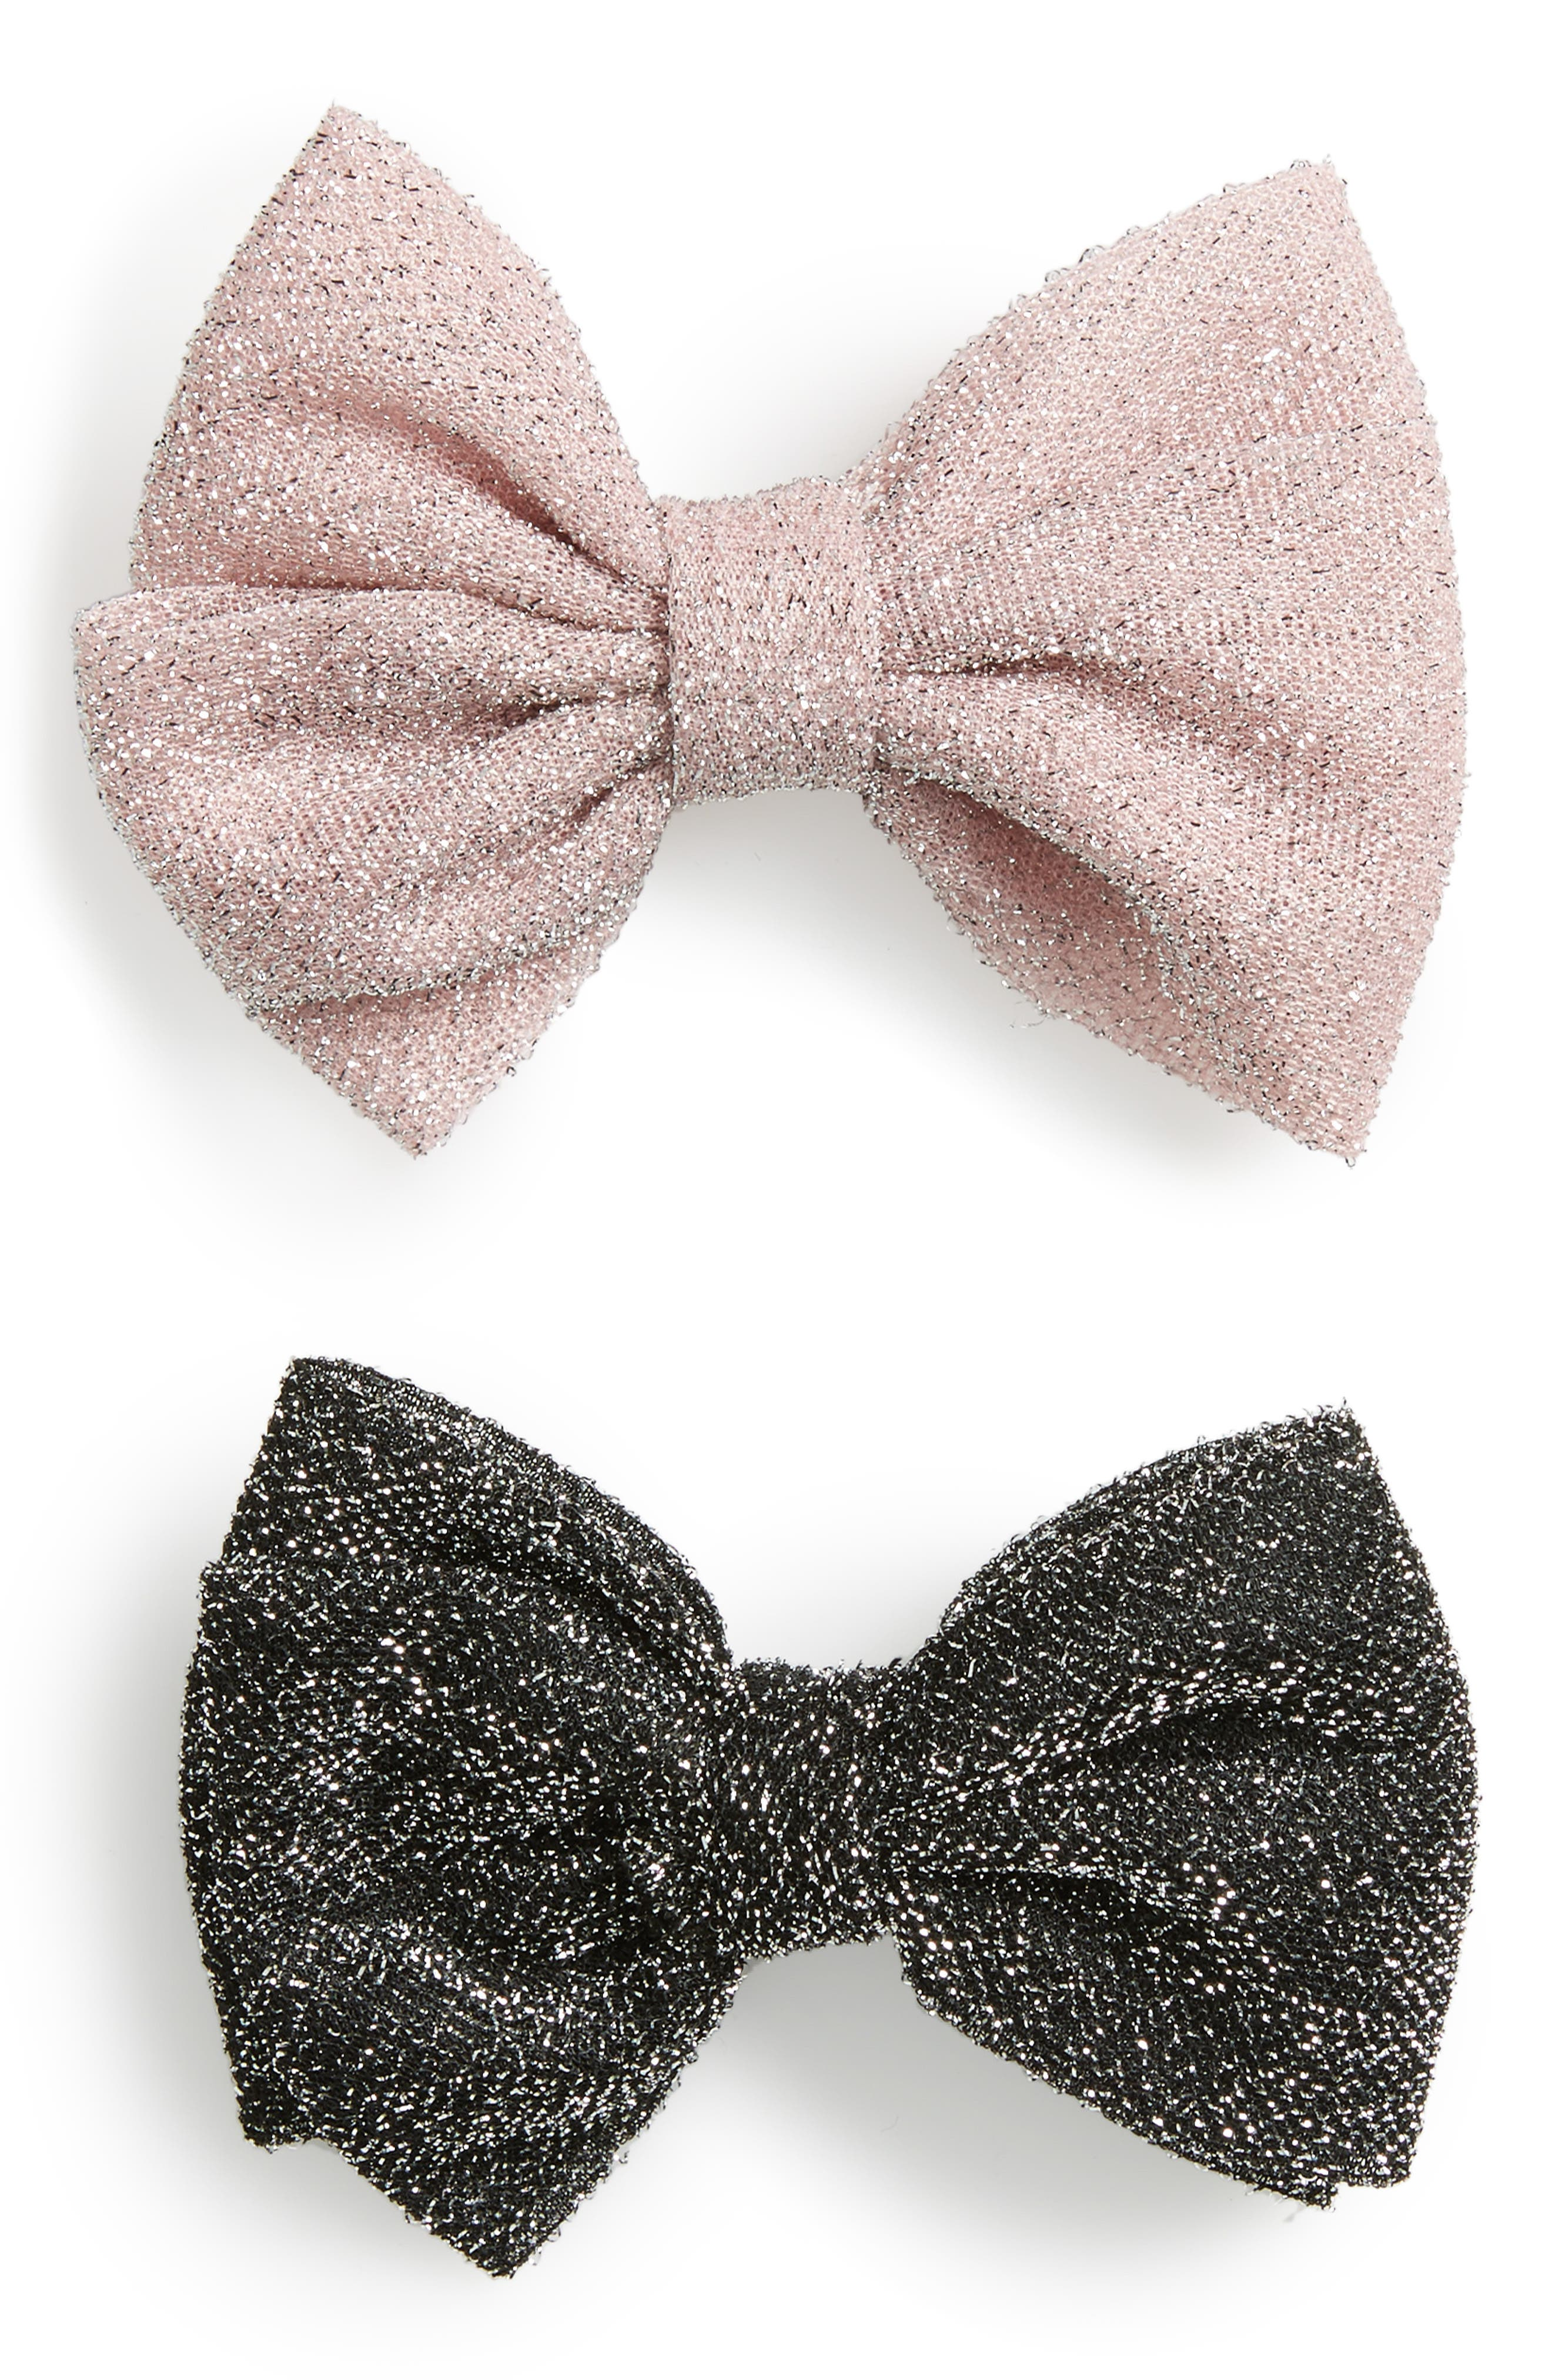 Alternate Image 1 Selected - PLH Bows & Laces Set of 2 Glitter Bows (Baby Girls)